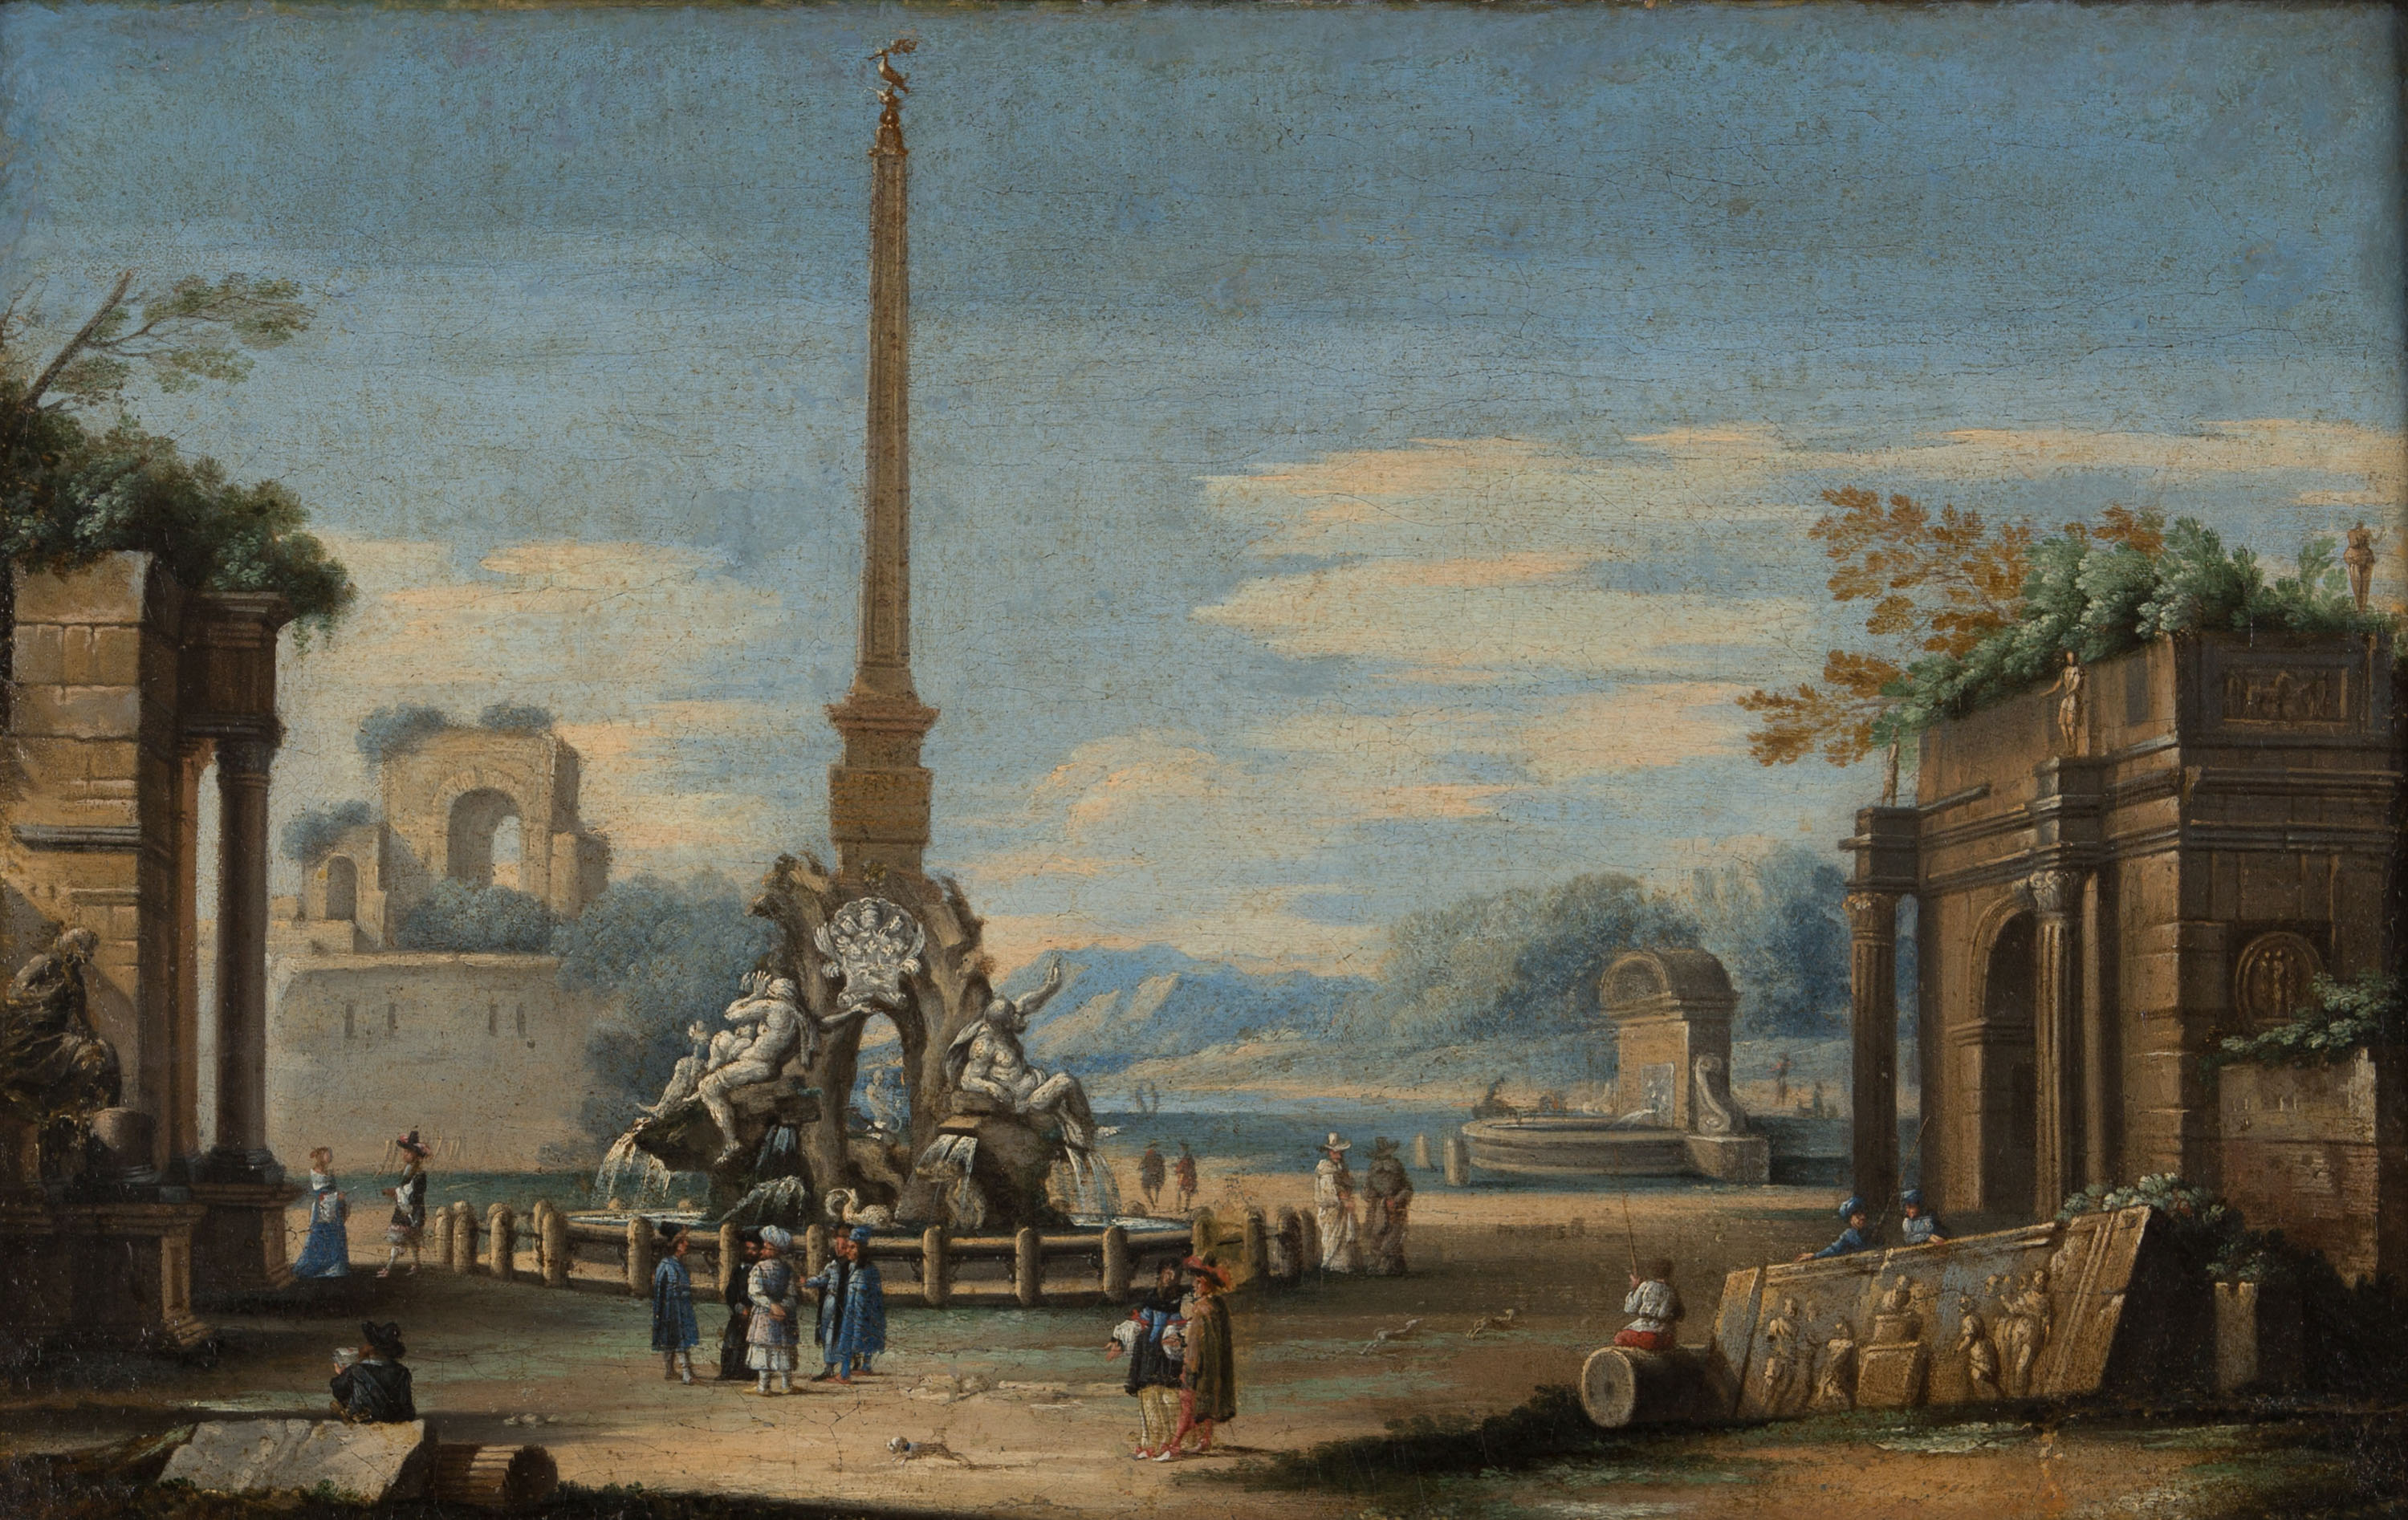 An Architectural Caprice with Bernini's Fountain, Circle of Gennaro Greco, Il Mascacotta (1663-1714).